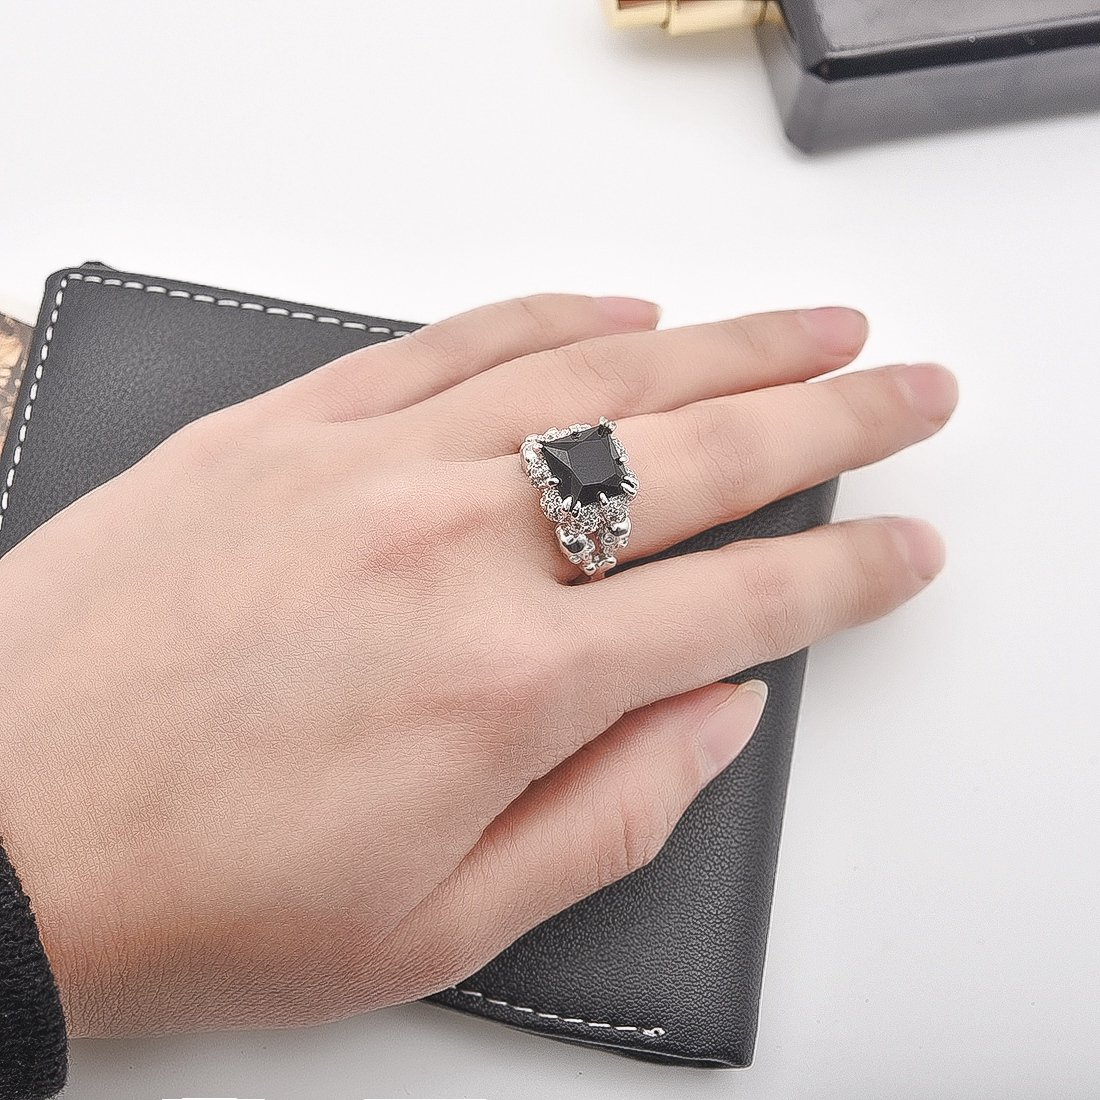 Amazon.com: OBSEDE Black Skull Ring Cubic Zirconia Rings for Women ...